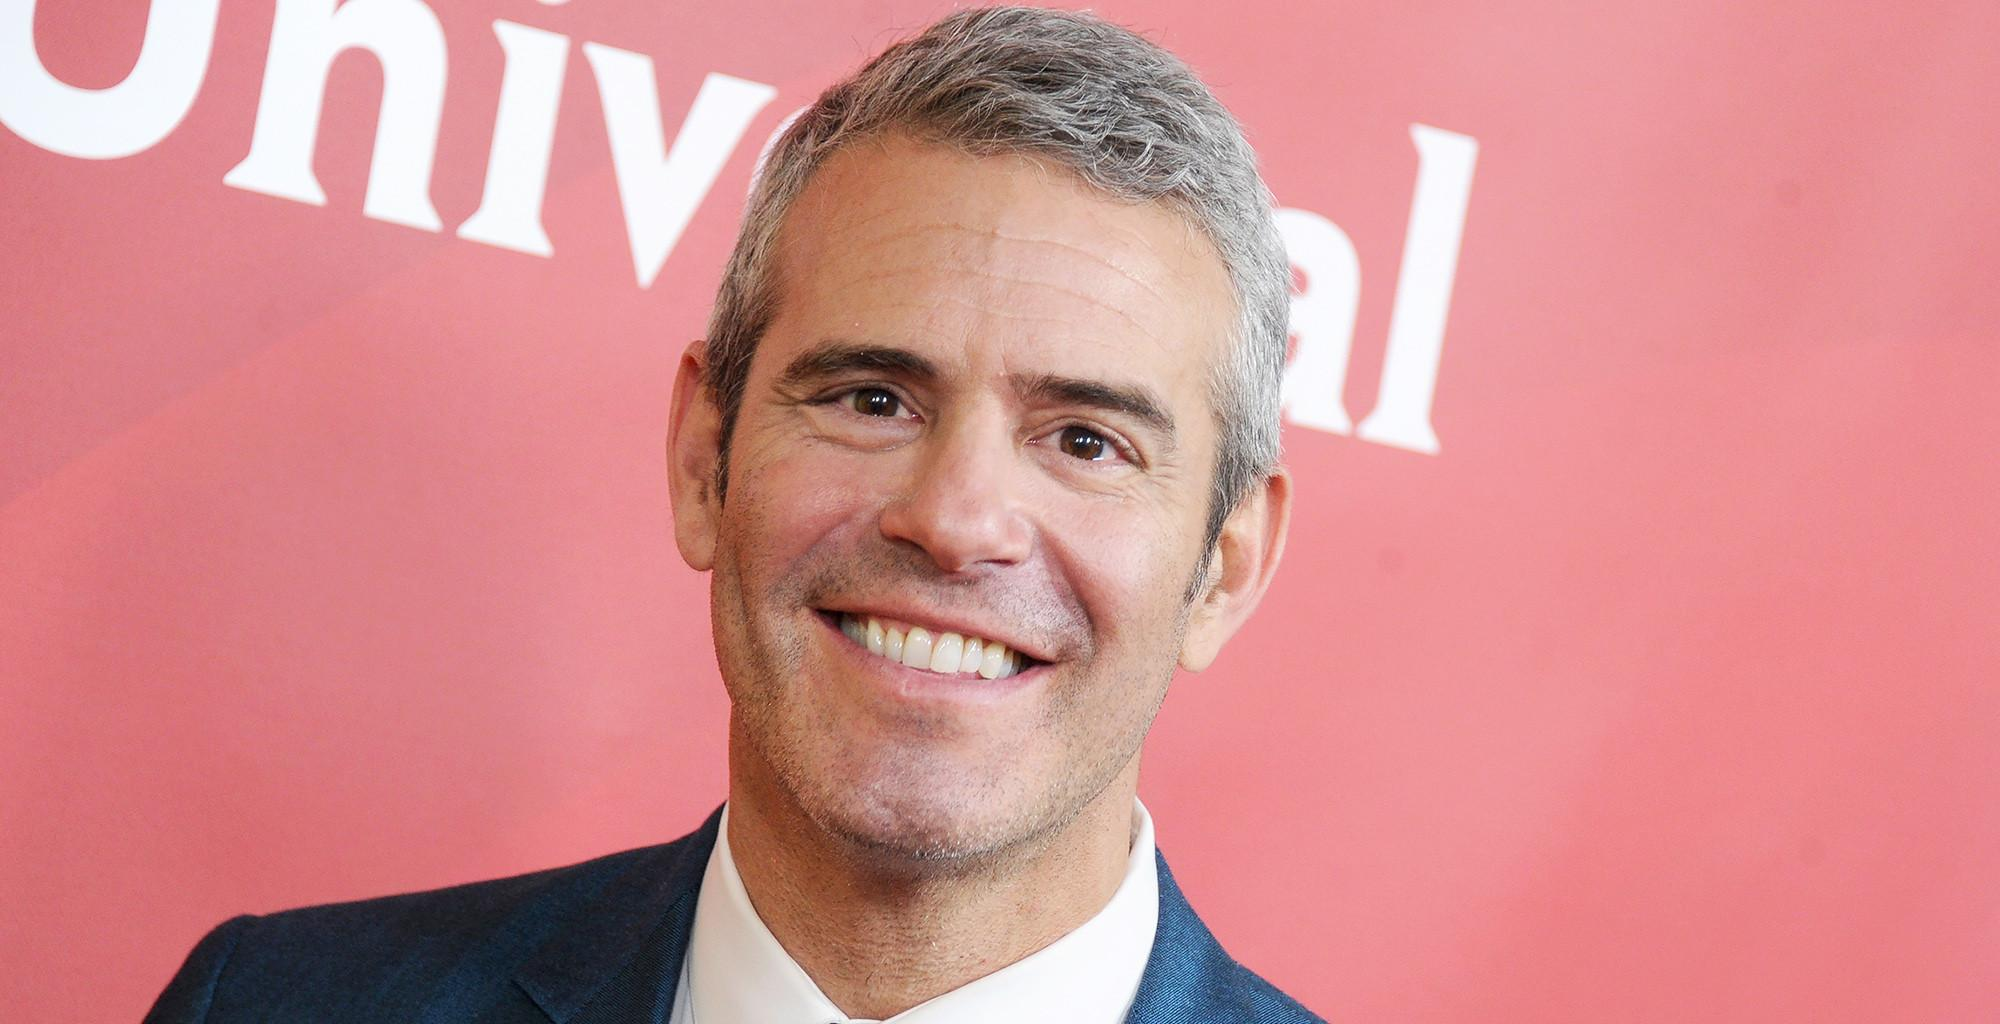 Andy Cohen Opens Up About Fatherhood And How His Lifestyle Has Changed - Reveals He Is Open To Having More Kids